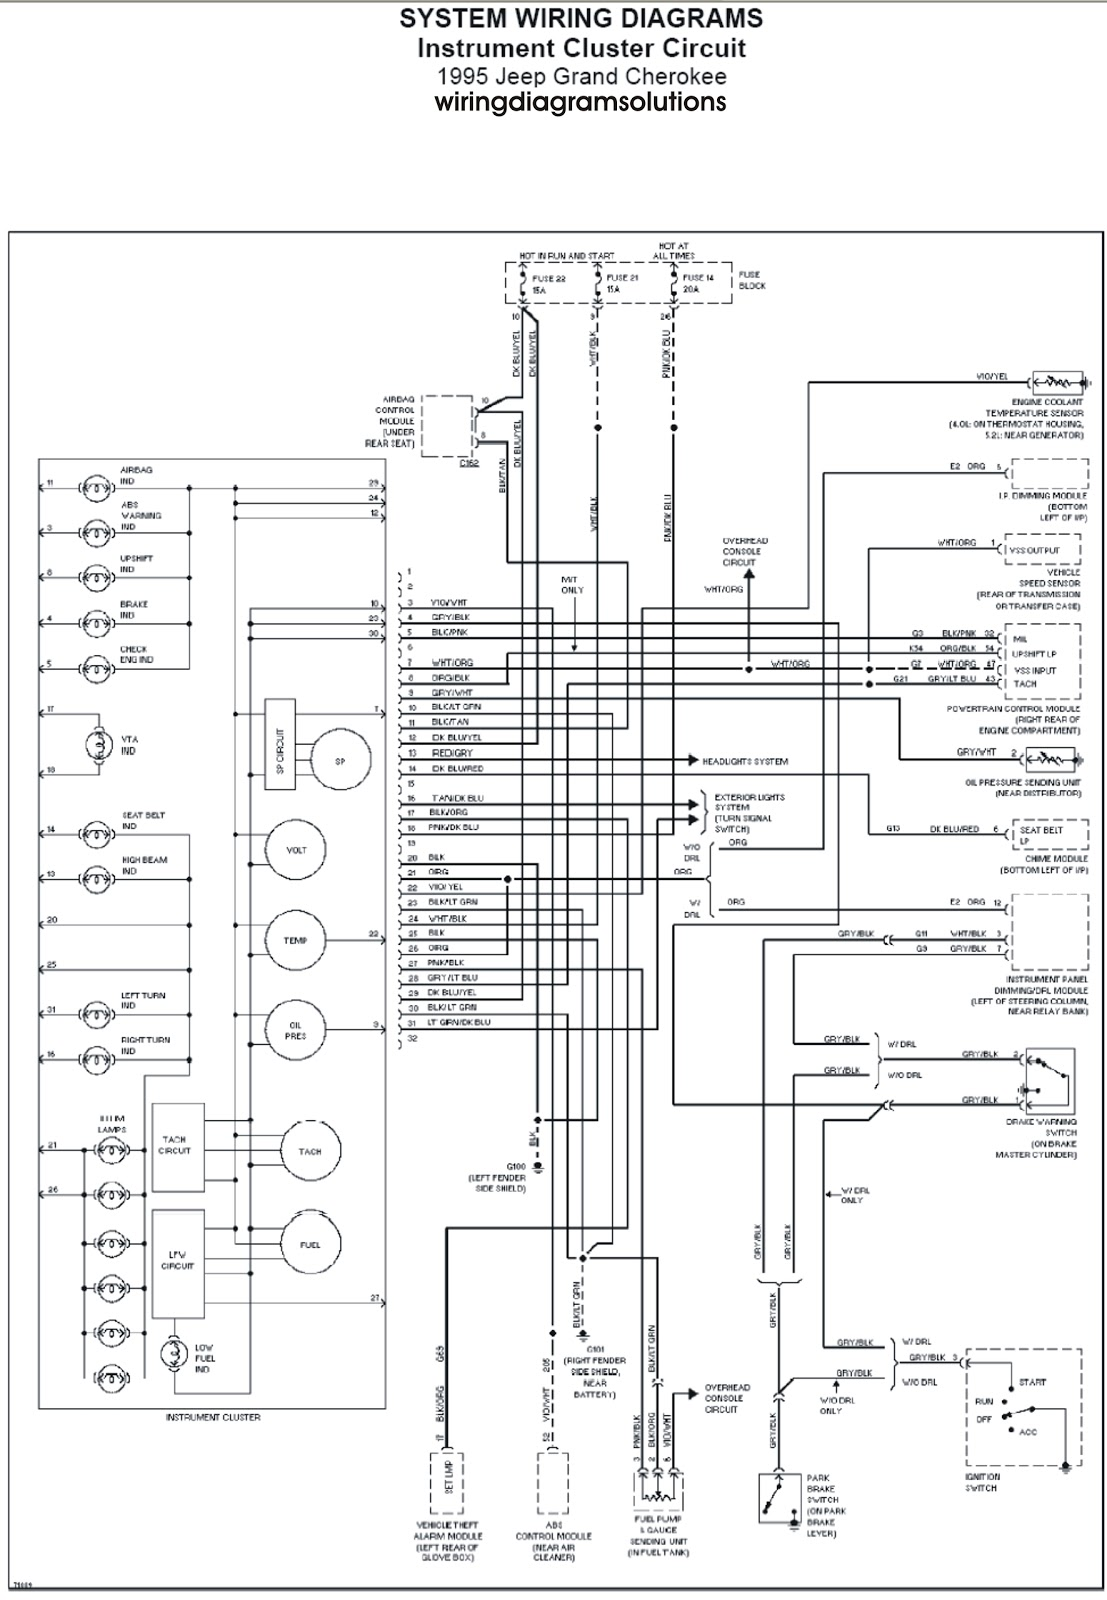 Ford F150 Wiring Harness Diagram besides 4 Wire Alternator Wiring Diagram besides 1991 Jeep Wrangler Wiring Diagram furthermore 2005 Toyota Camry Engine Diagram besides 2012 Kia Sportage Headlight Wiring Diagram Valid E46 M3 Headlight Wiring Diagram Wiring Solutions. on honda civic stereo wiring diagram